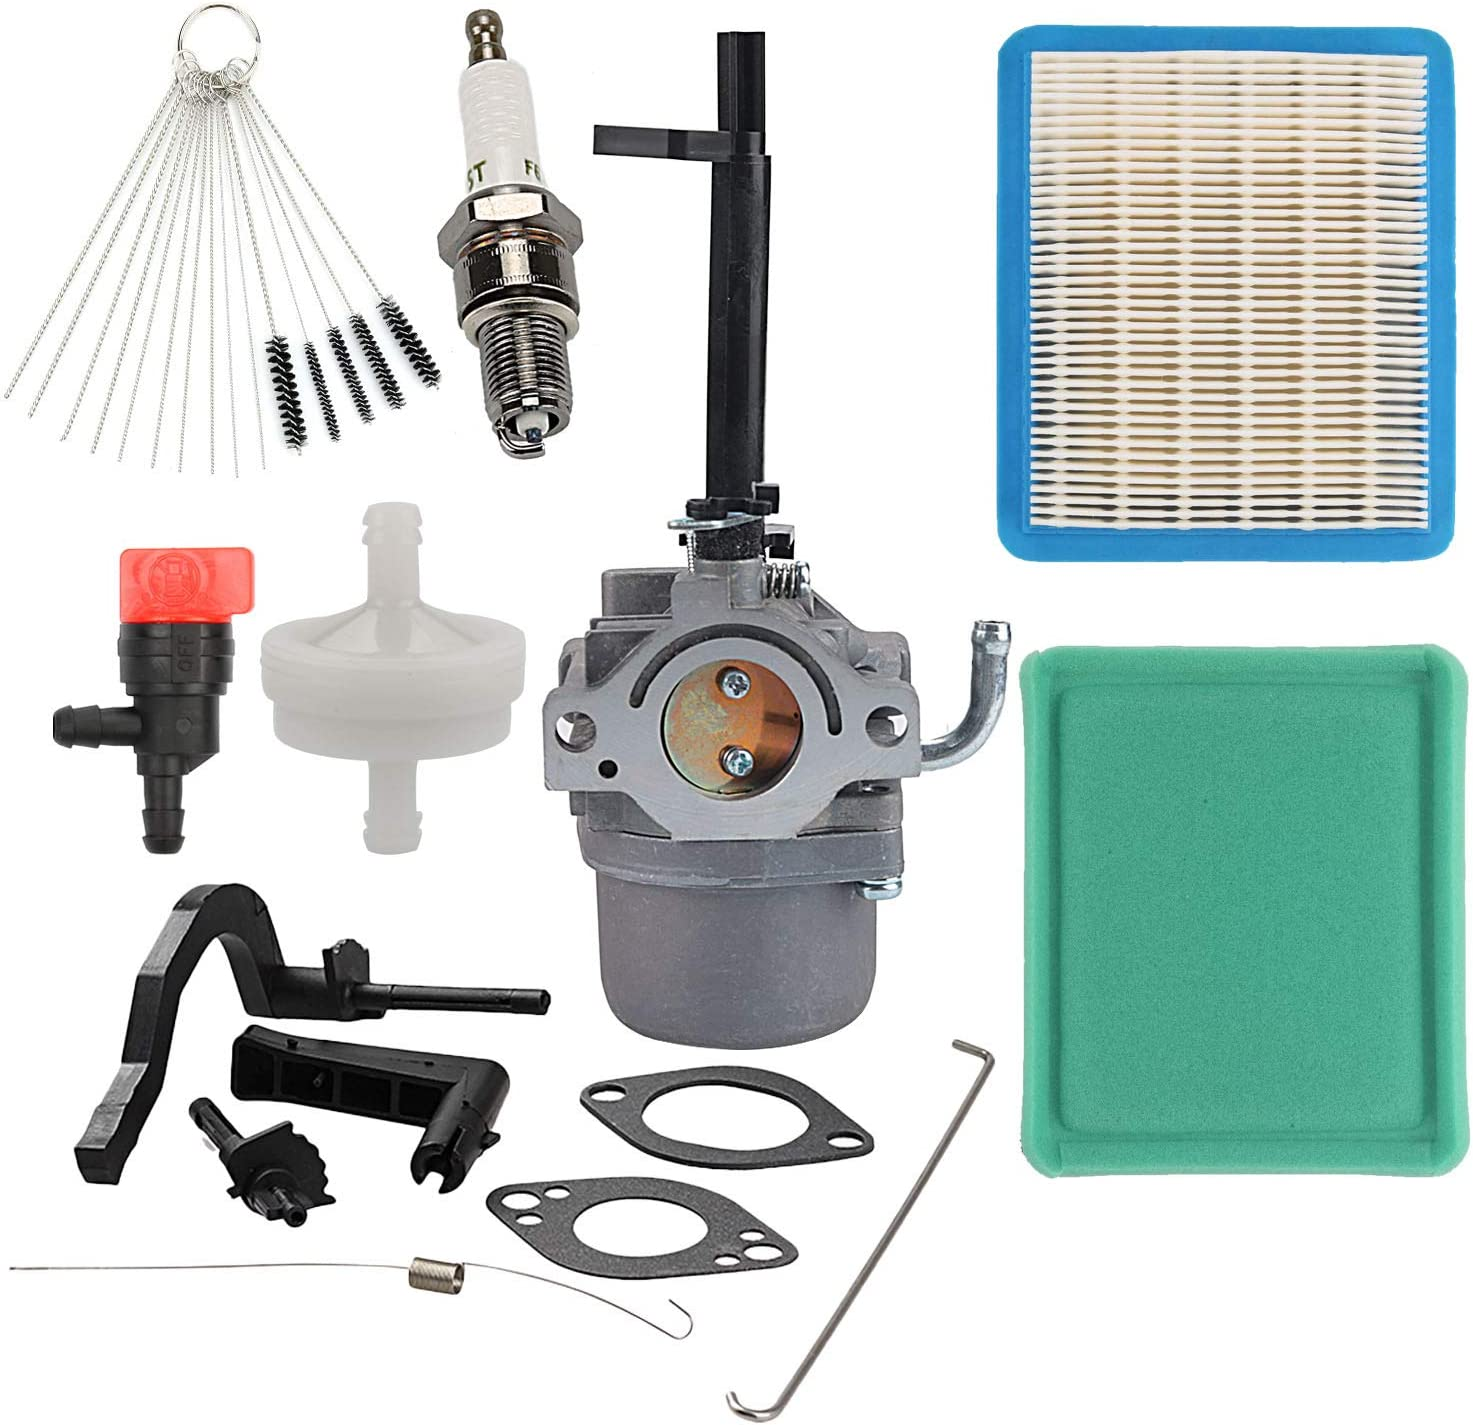 Wellsking 591378 Carburetor with 491588S Air Filter Tune-Up Kit for BS Generator 697978 796321 696132 696133 796322 697351 699958 699966 698455 695918 694952 695919 695920 695328